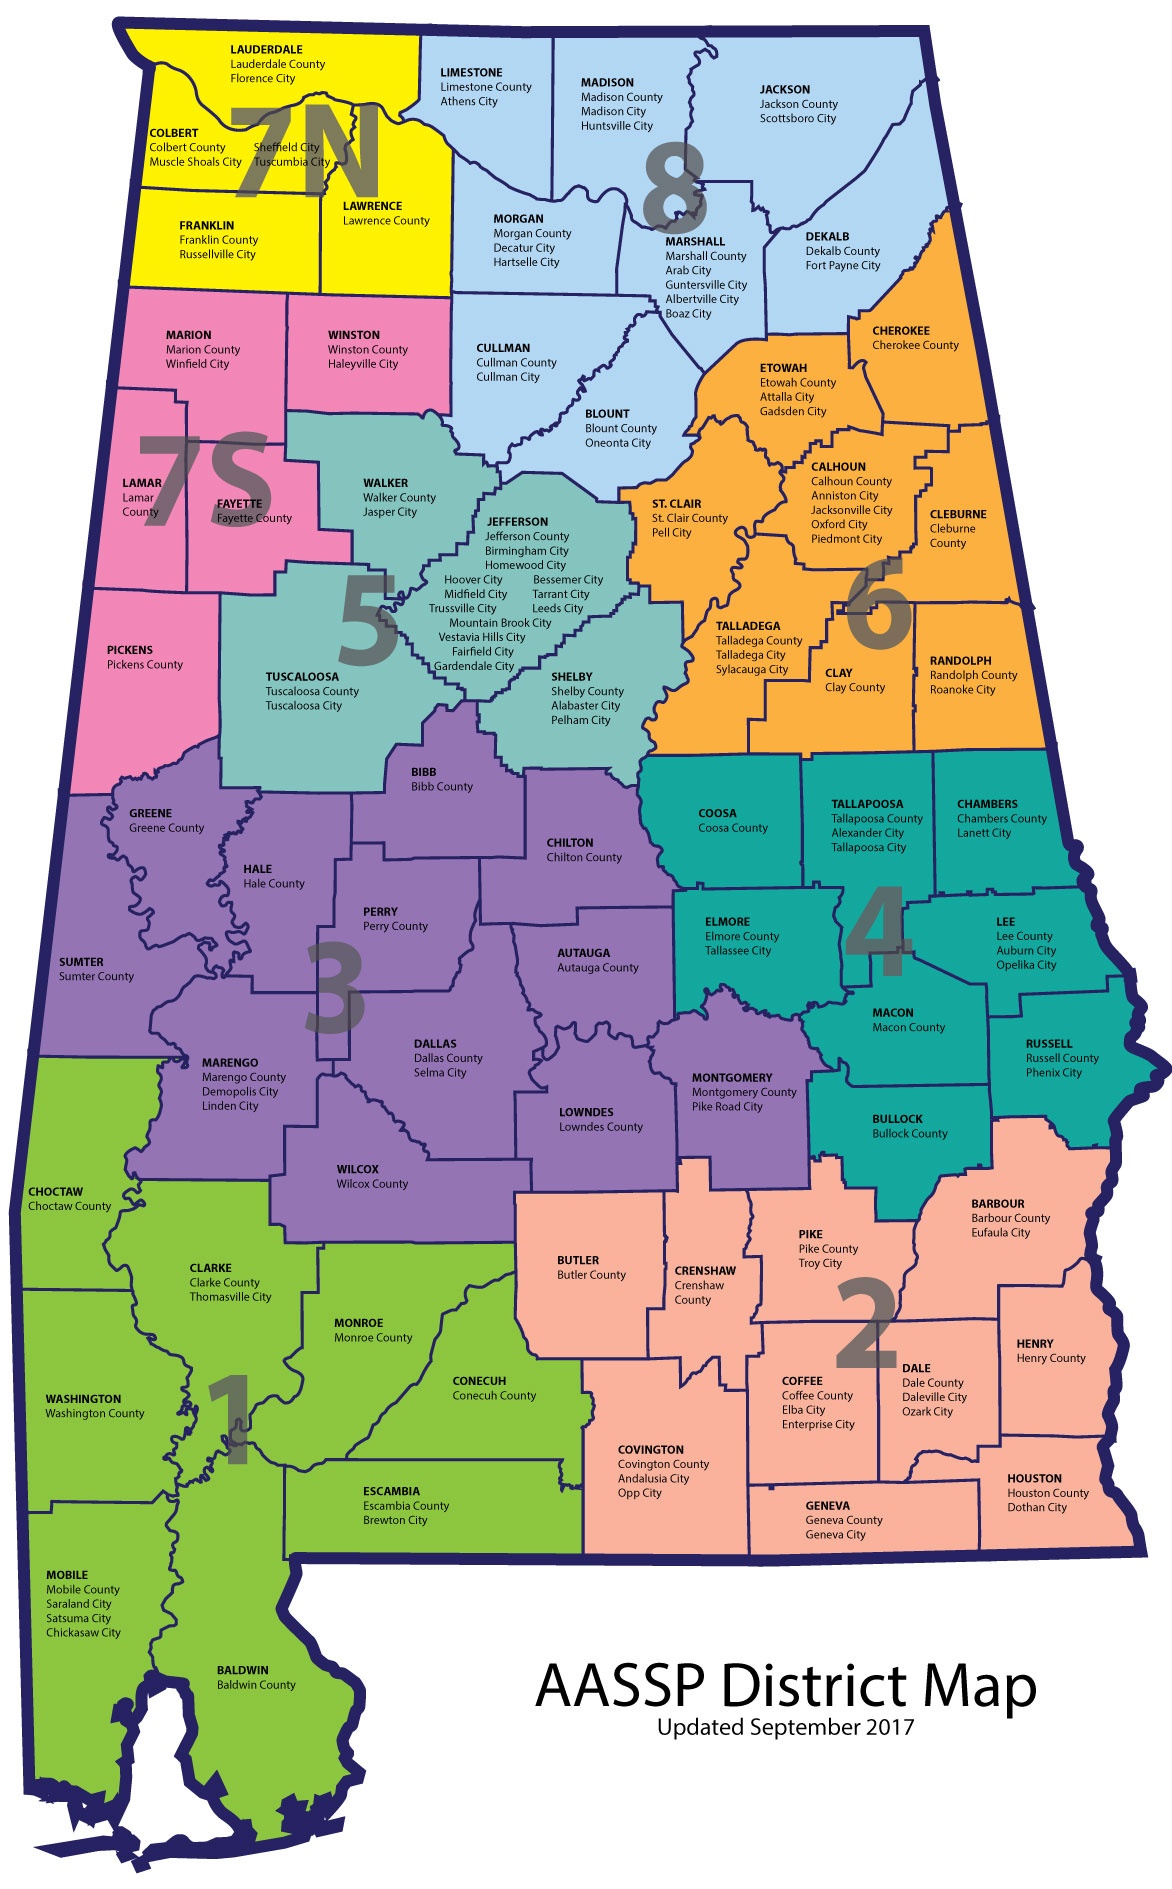 AASSP/AAMSP District Map